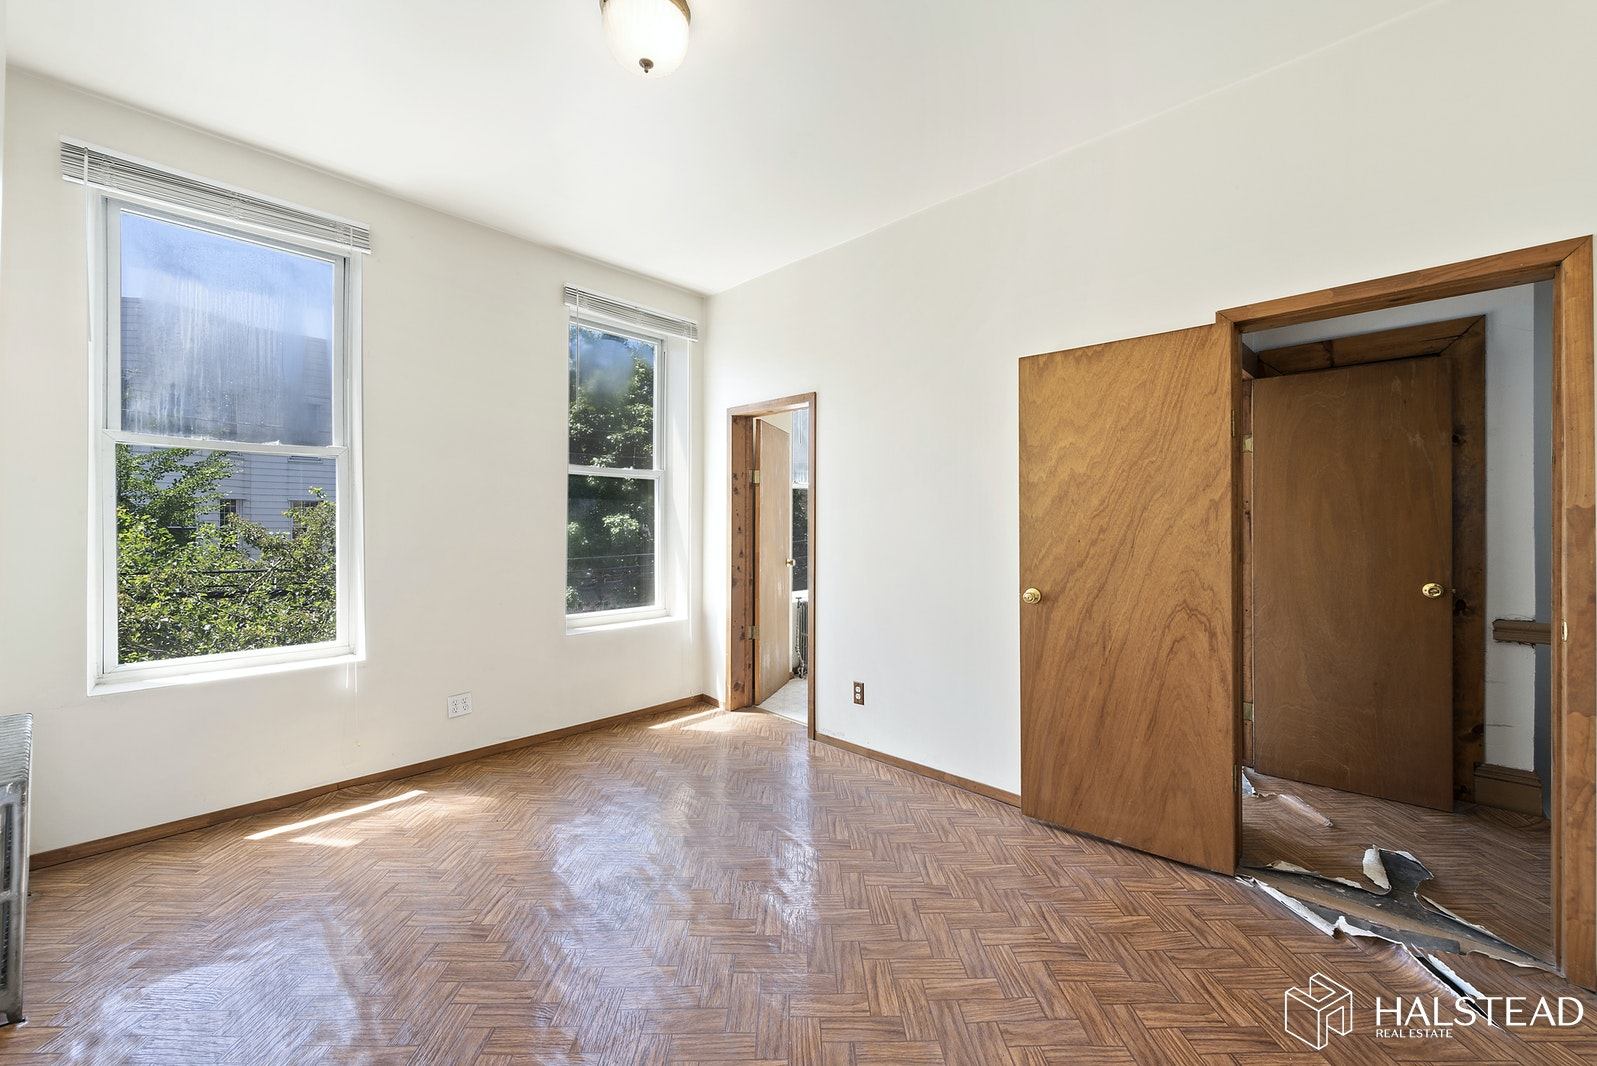 618 MORGAN AVENUE, Greenpoint, $1,200,000, Web #: 19455465